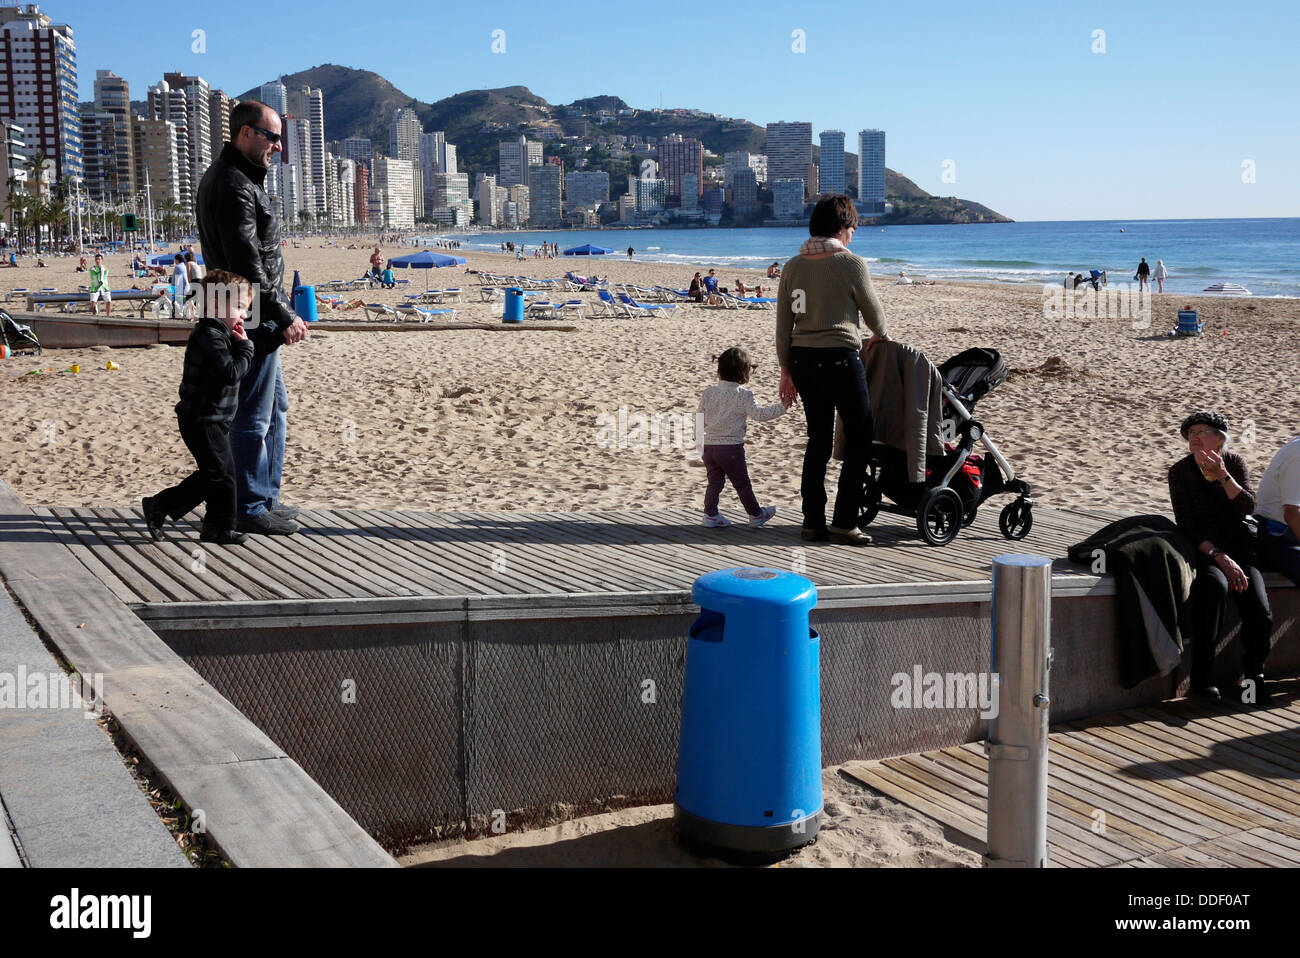 disability access to Levante Beach in Benidorm Costa Blanca Spain - Stock Image